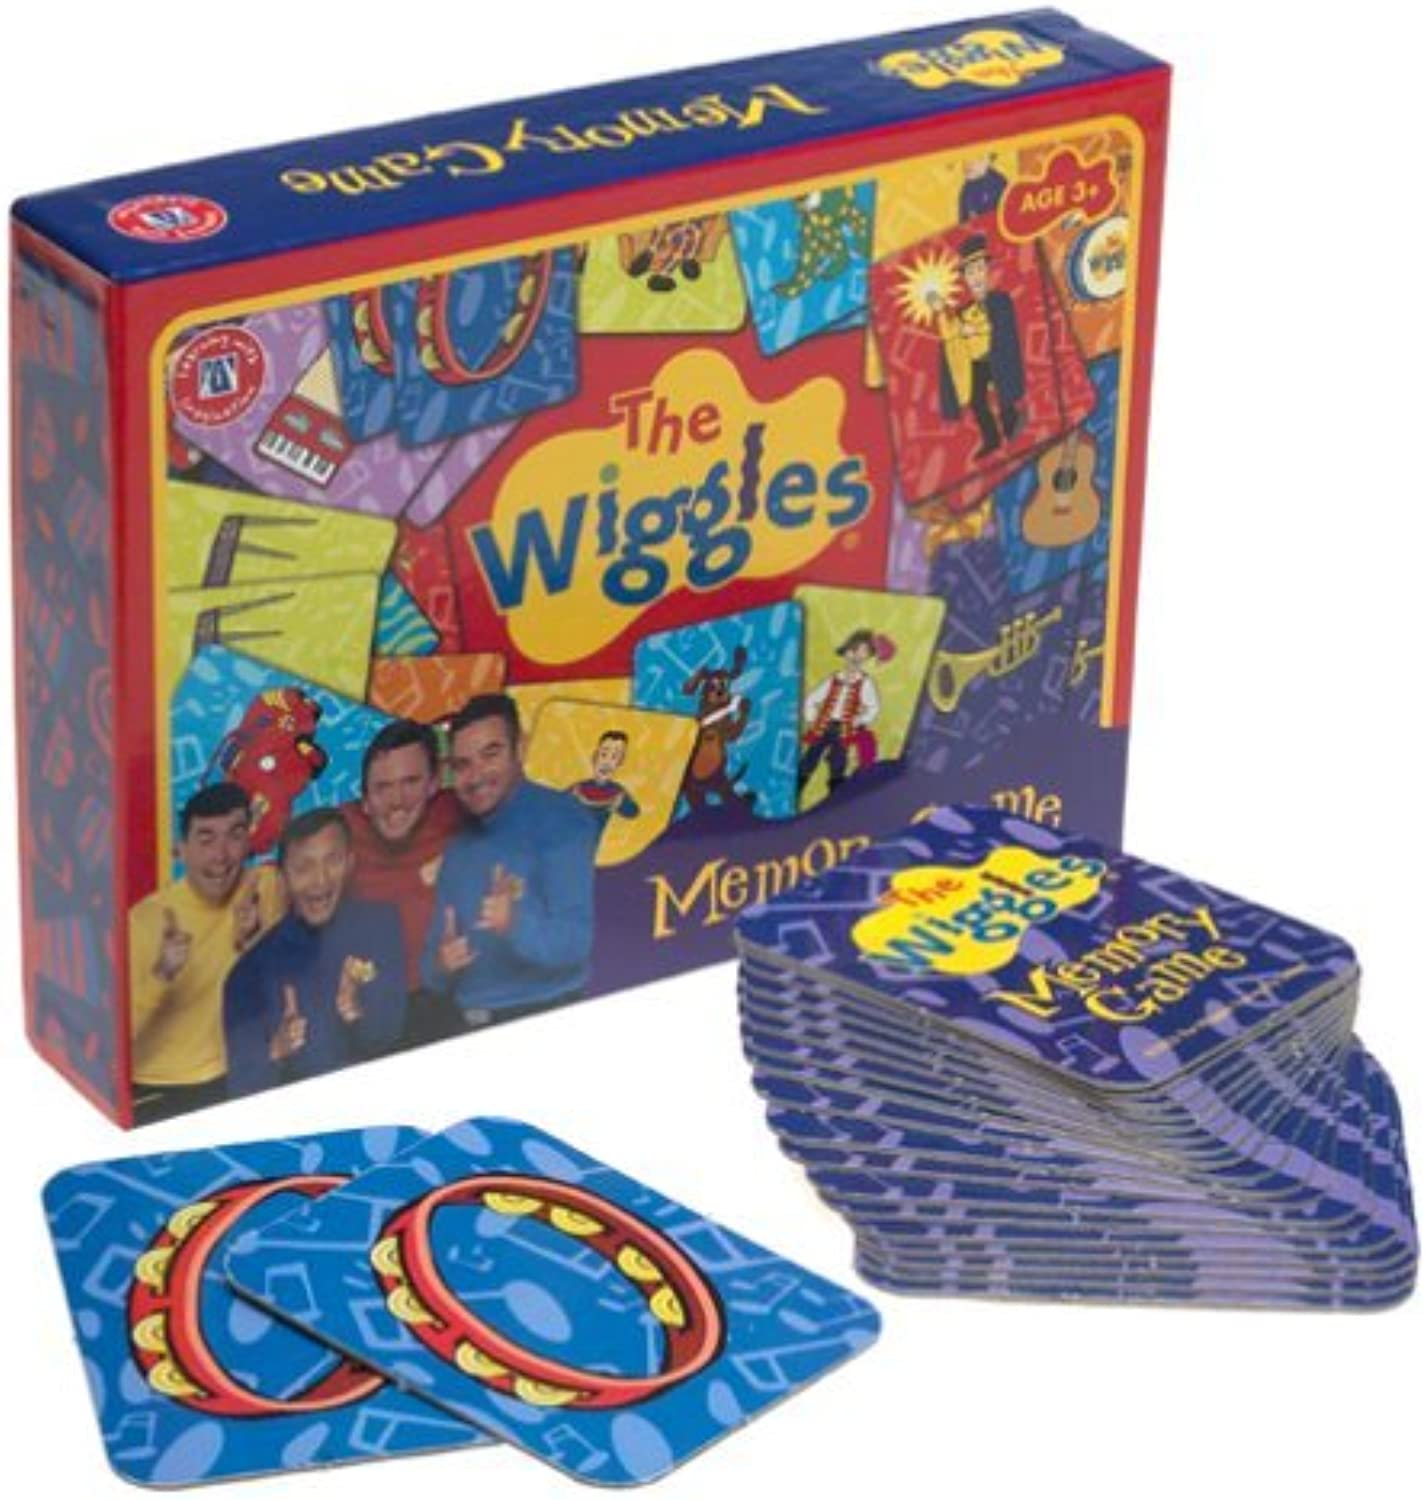 The Wiggles Memory Game by The Wiggles